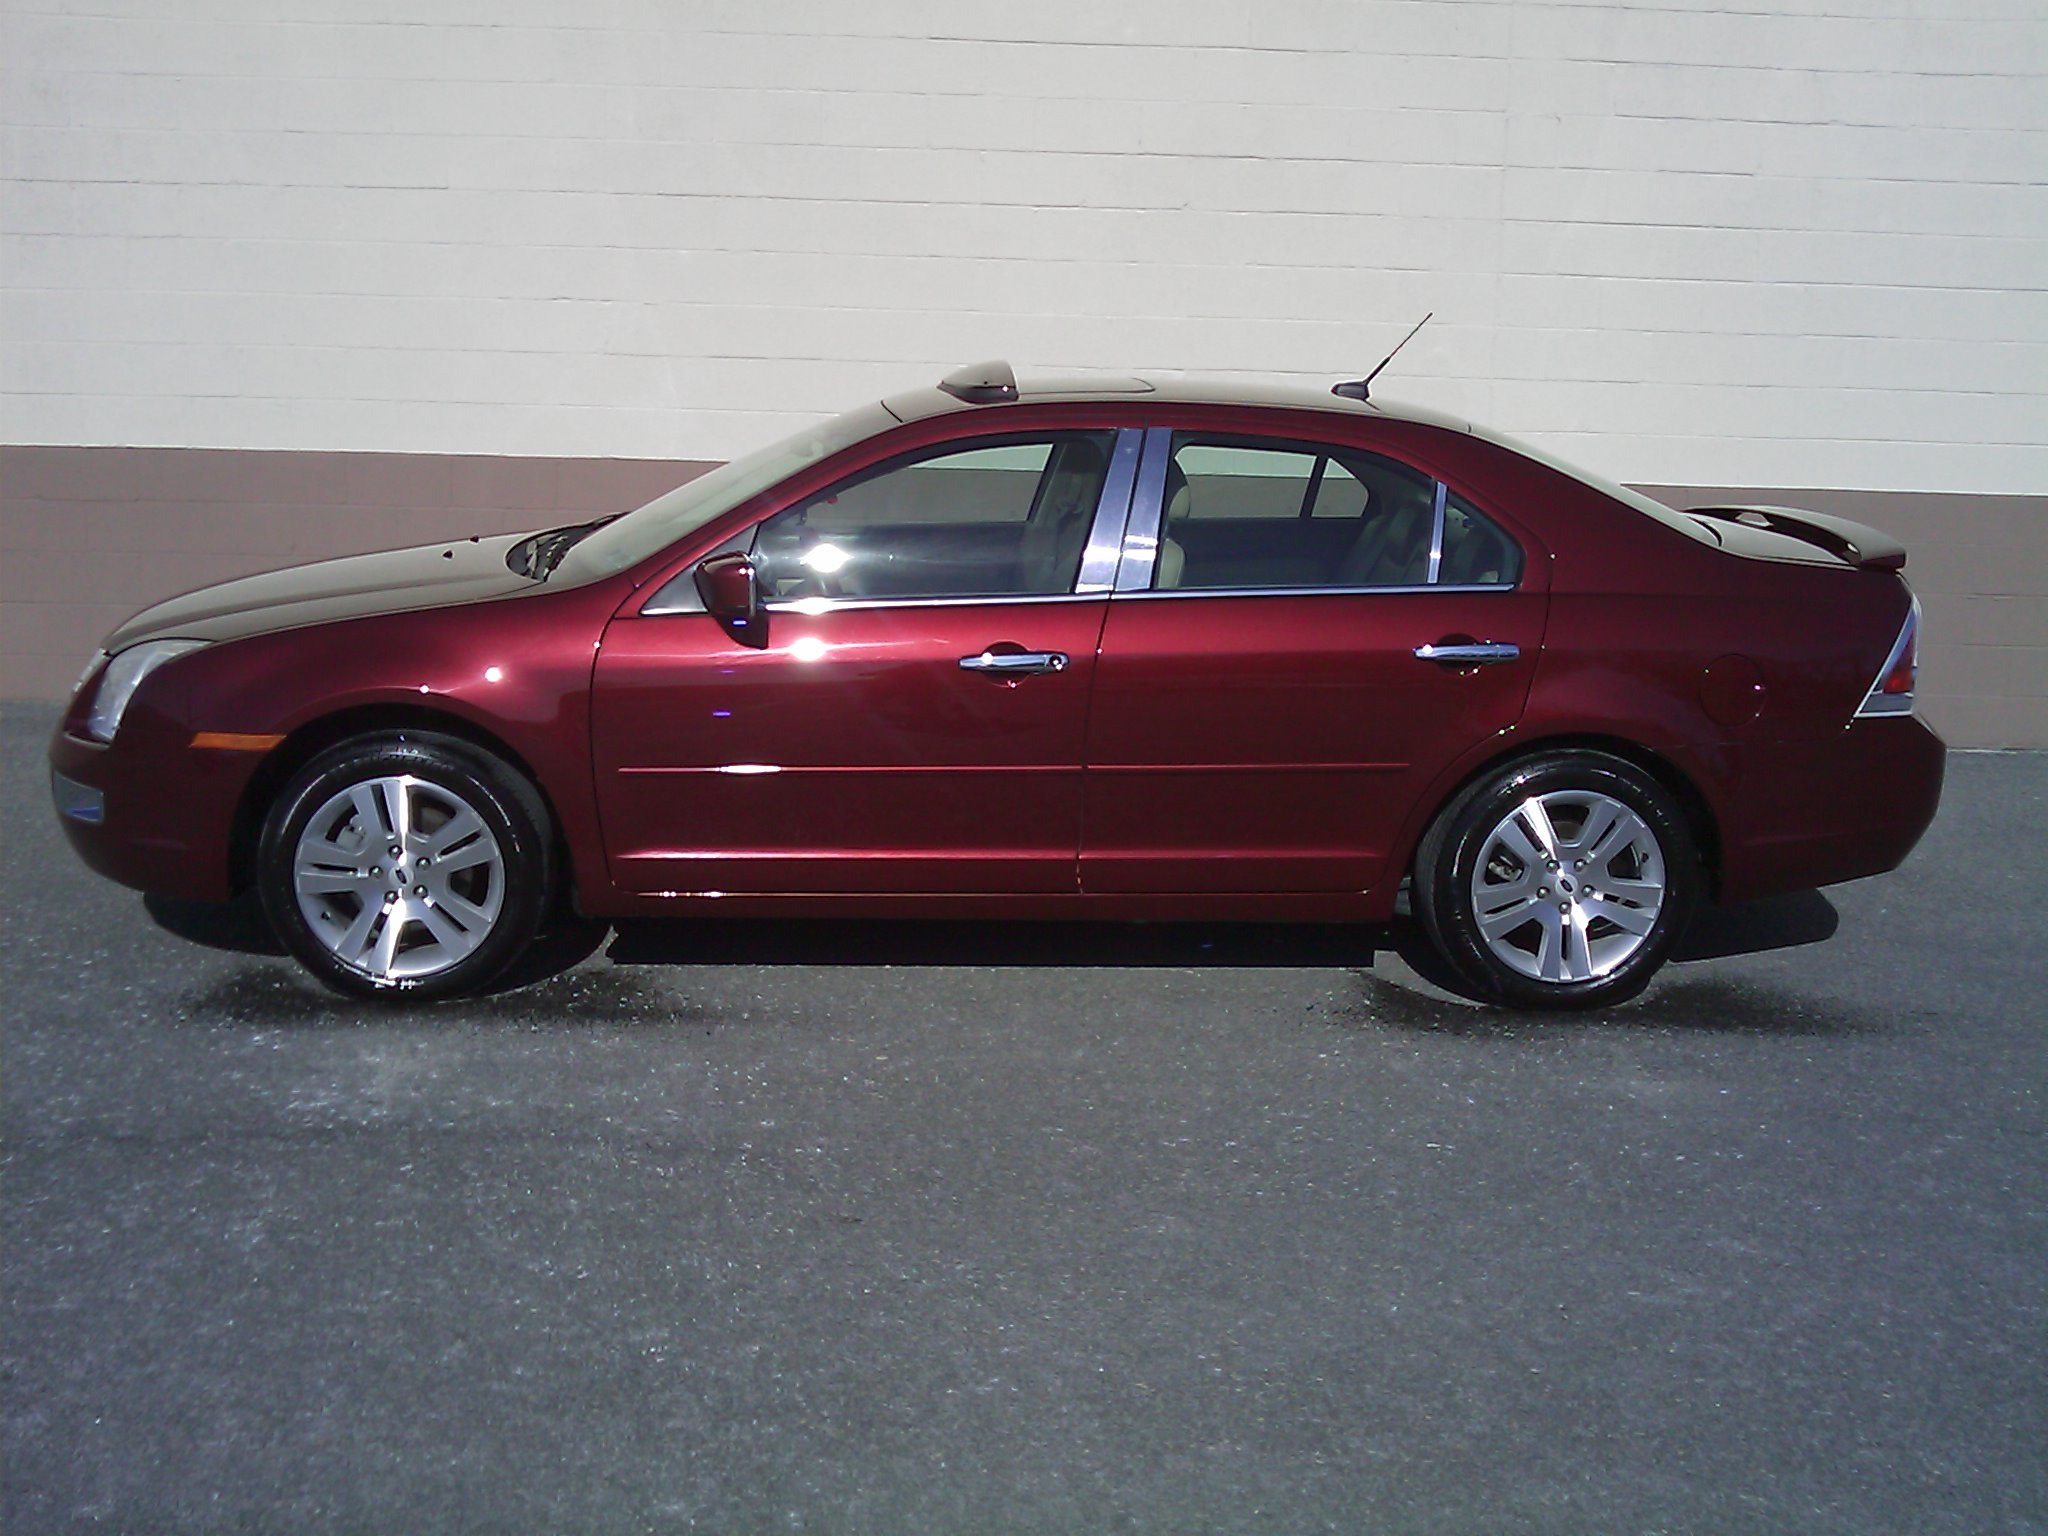 buffdaddy2009 39 s 2007 ford fusion in tampa bay fl. Black Bedroom Furniture Sets. Home Design Ideas